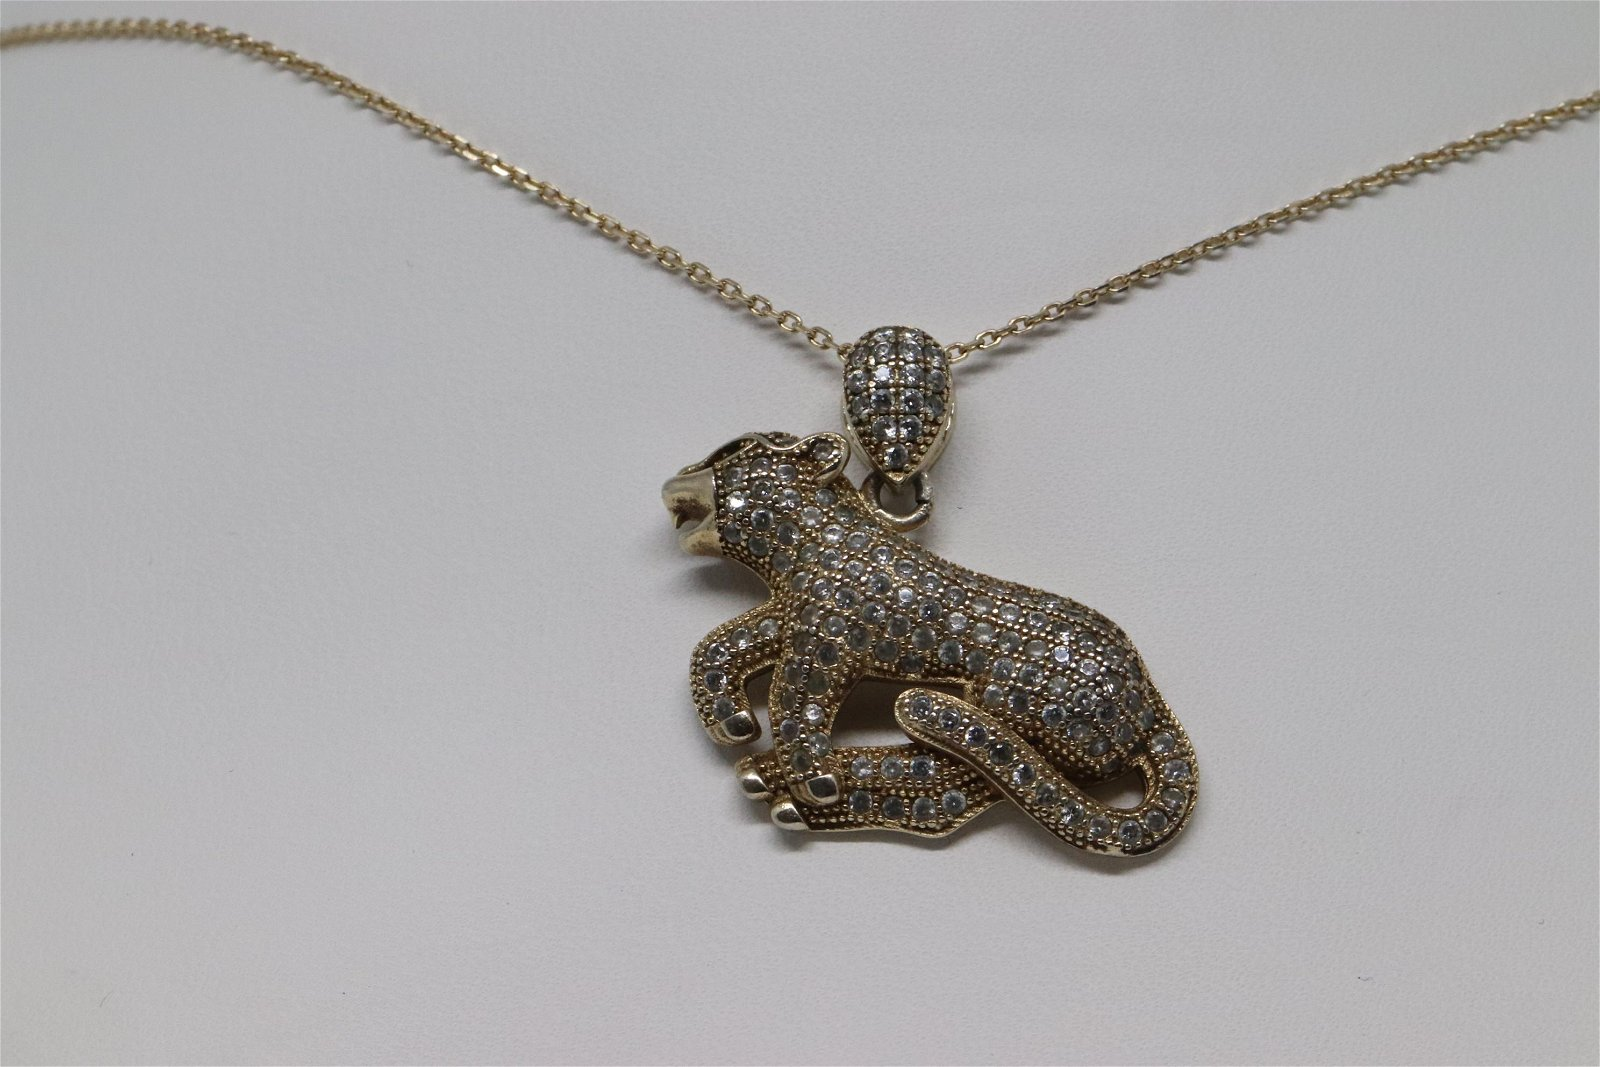 Ladies .925 silver necklace with a pendant of a Chetah